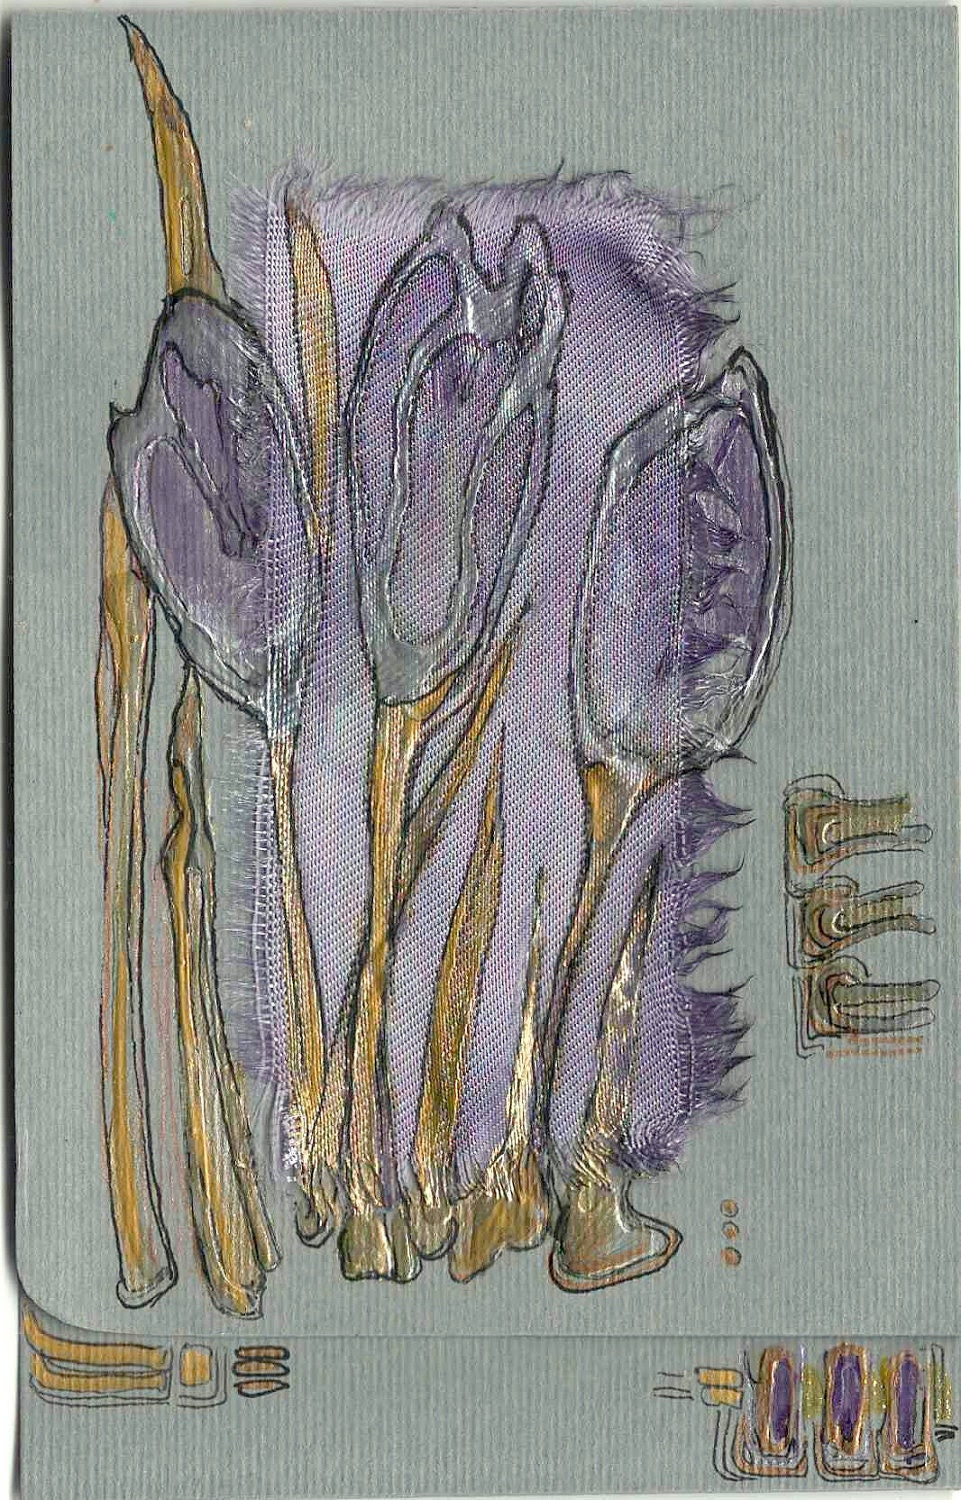 Mauve crocuses - blank greeting card for any occasion